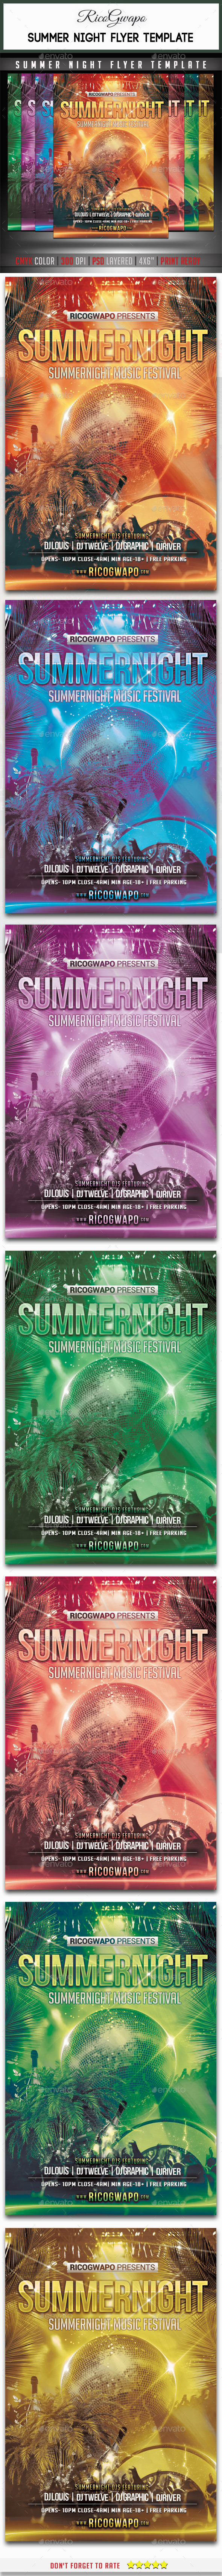 Summer Night Flyer Template - Flyers Print Templates